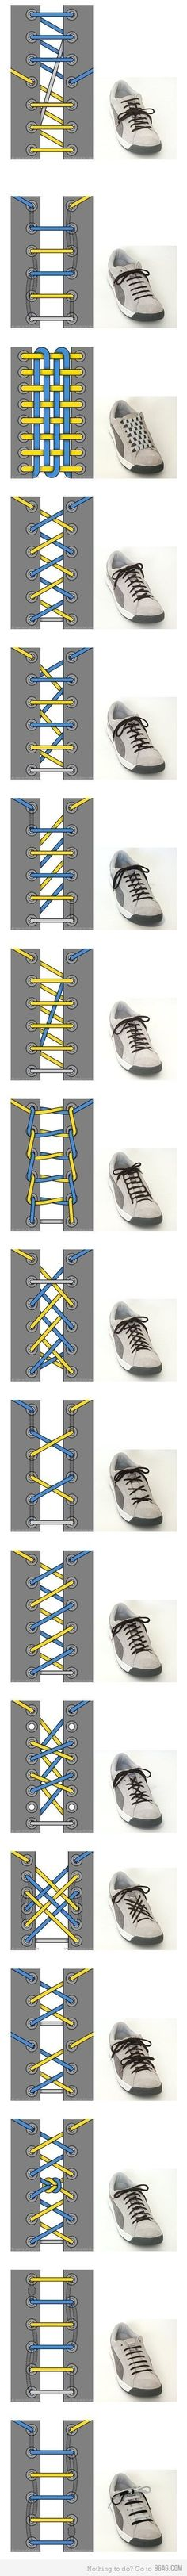 Creative Ways to Tie Shoe Laces! | Young Craze